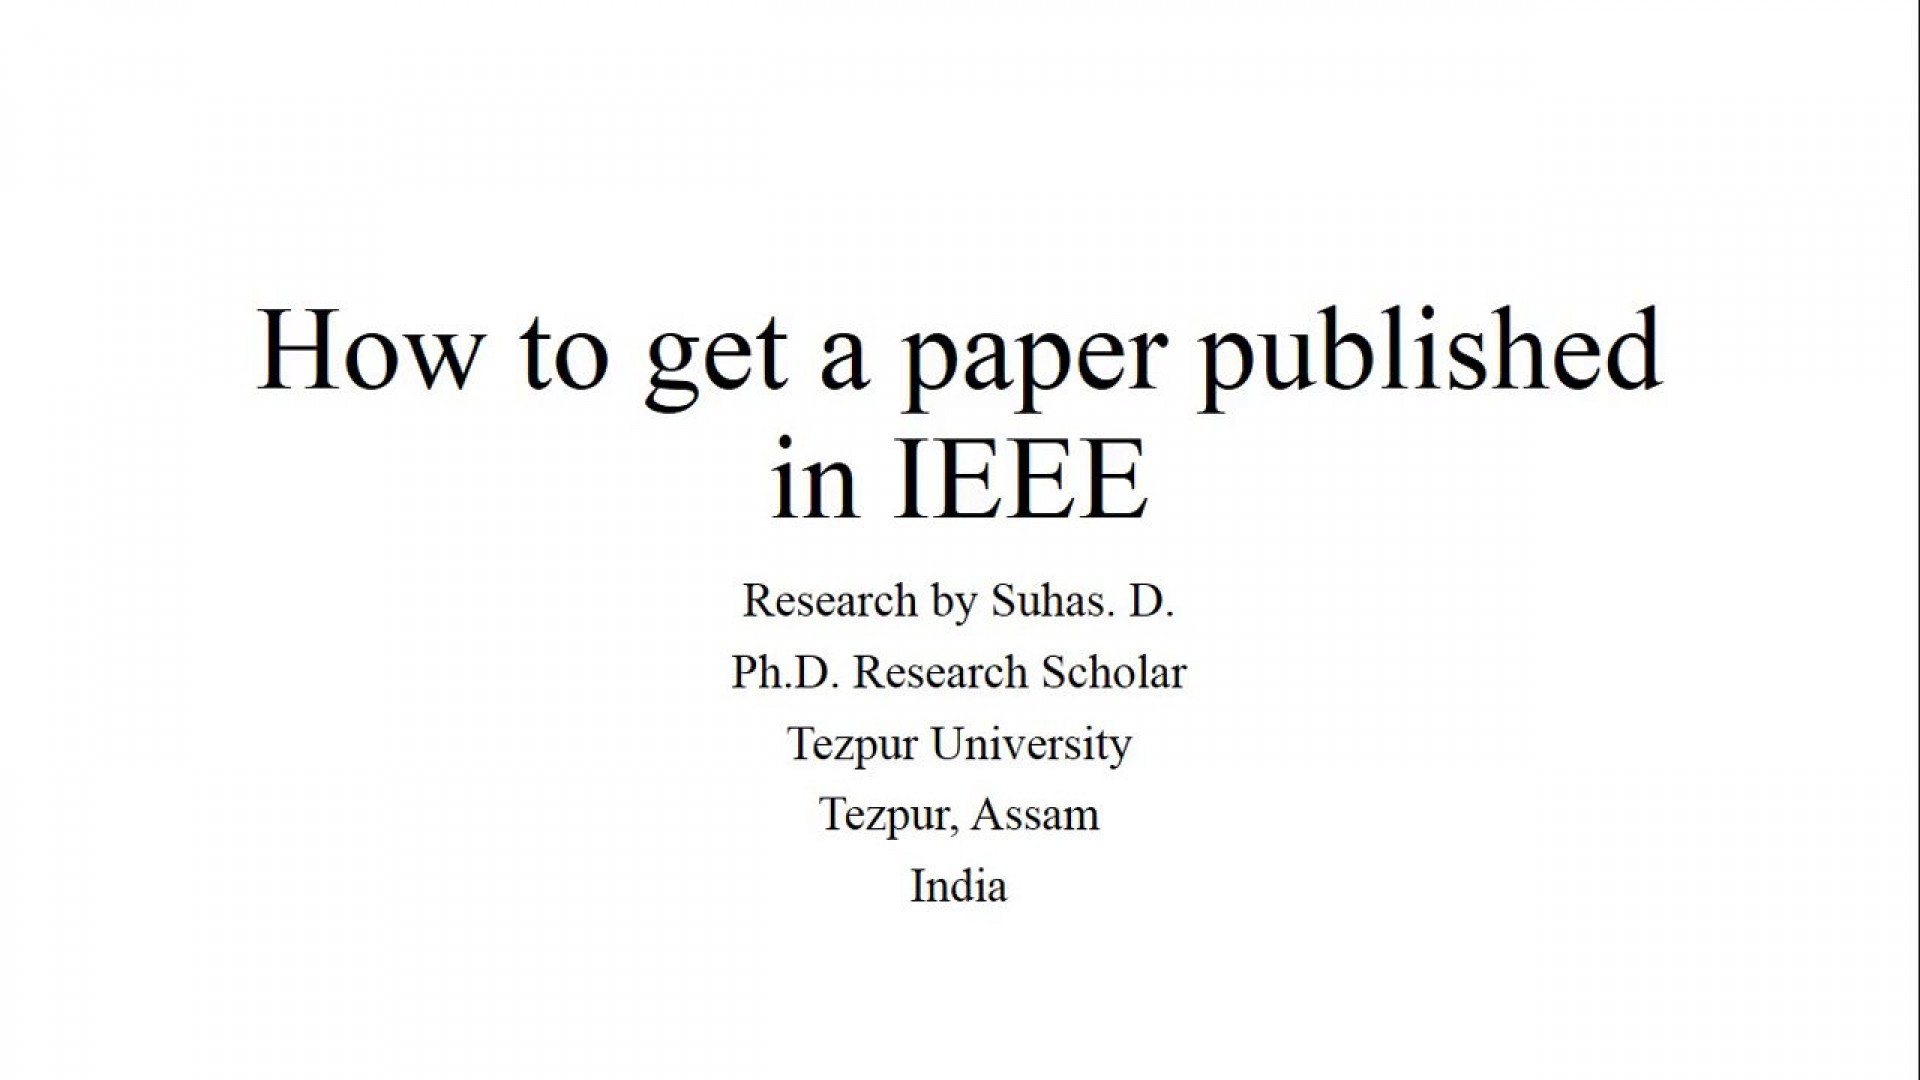 001 Research Paper Maxresdefault How To Get Published Singular India 1920